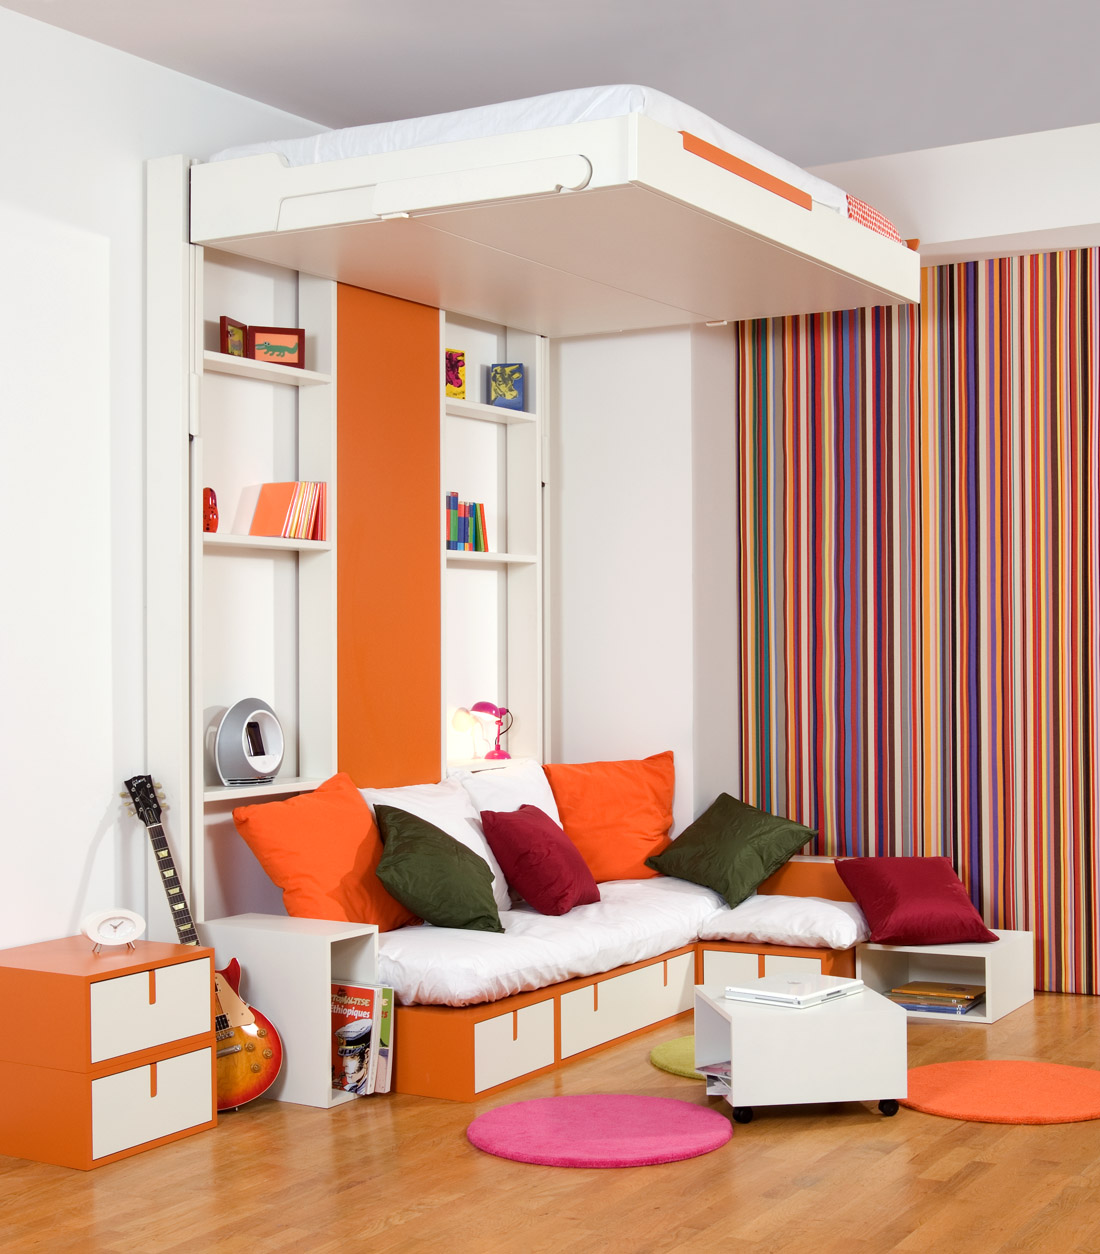 Bunk Bed Space Saver 10 great space-saving beds - living in a shoebox